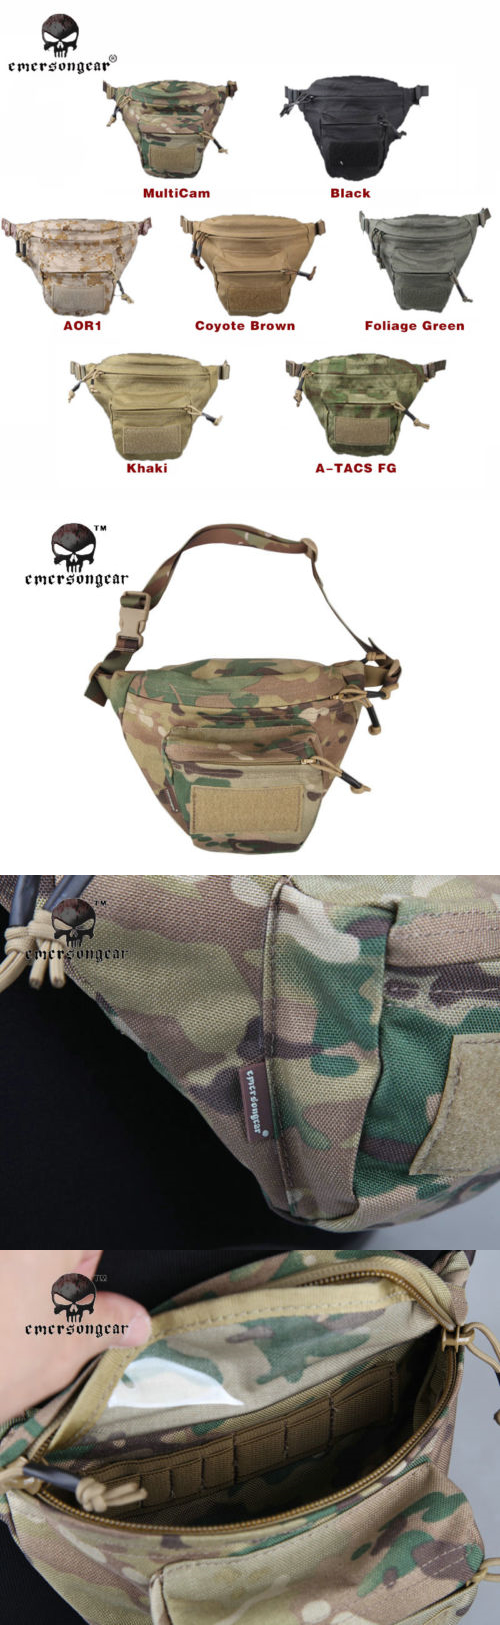 Waist Packs and Bags 181380: Emerson Multi-Function Waist Bag Military Molle Pouch Combat Hunting Gear 9176 -> BUY IT NOW ONLY: $36.33 on eBay!